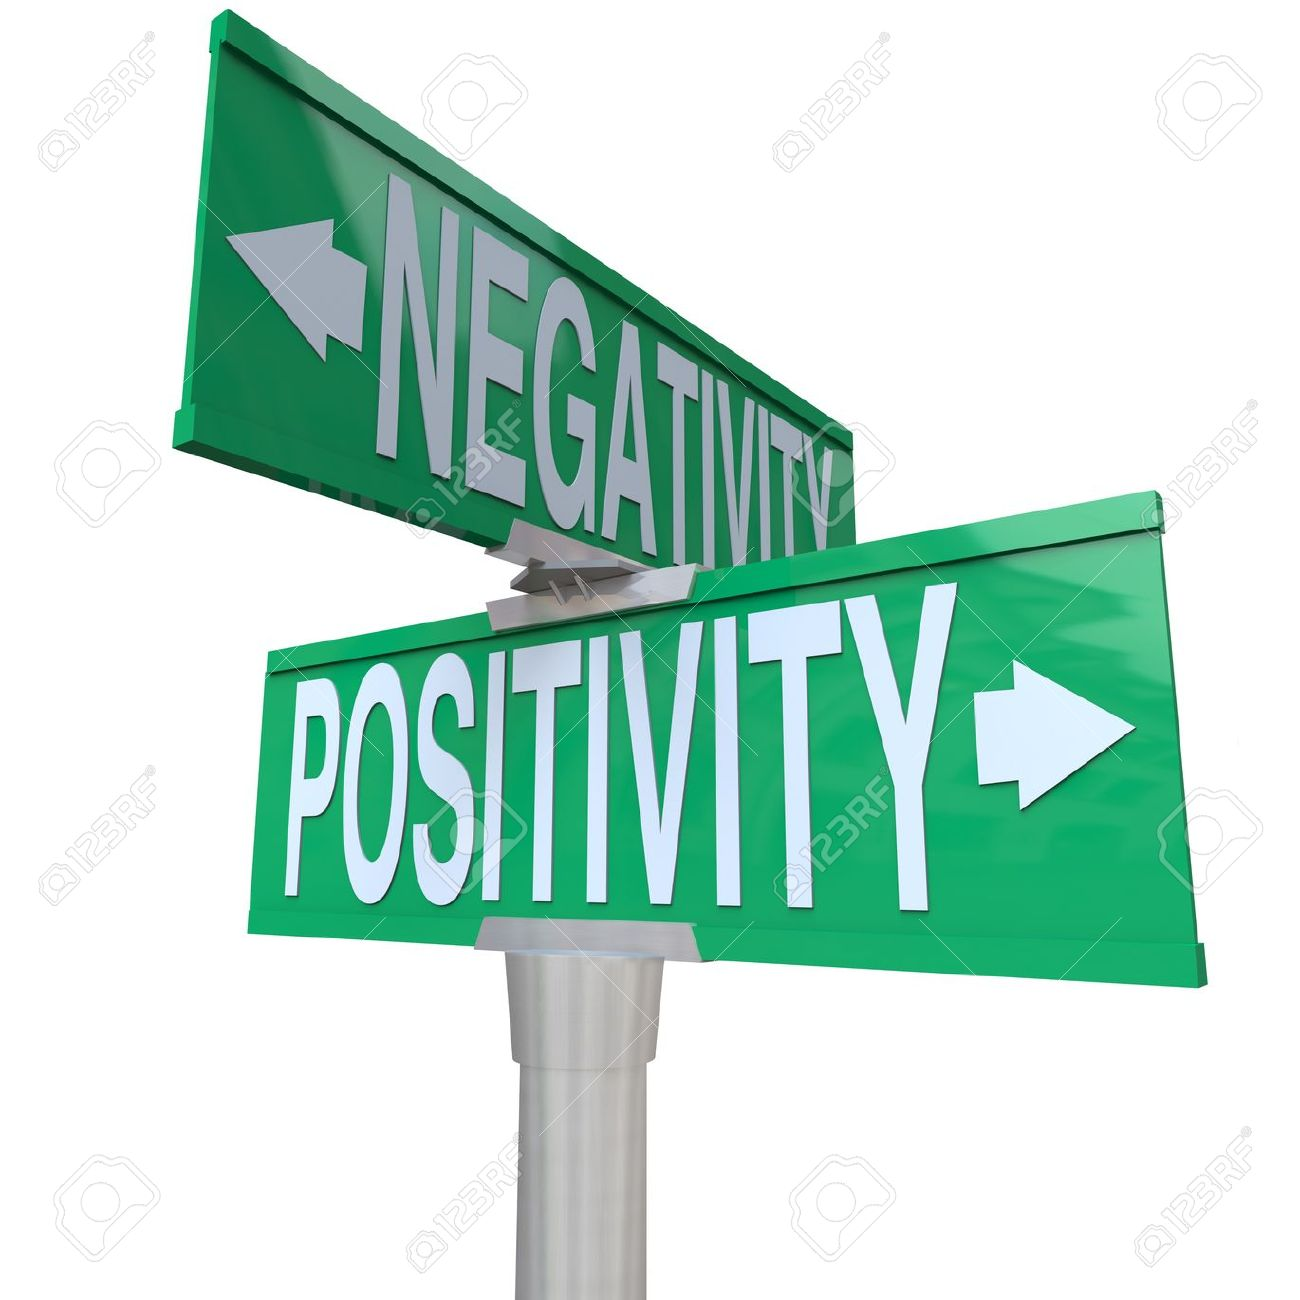 A green two-way street sign pointing to Positivity vs Negativity Stock Photo - 8370903